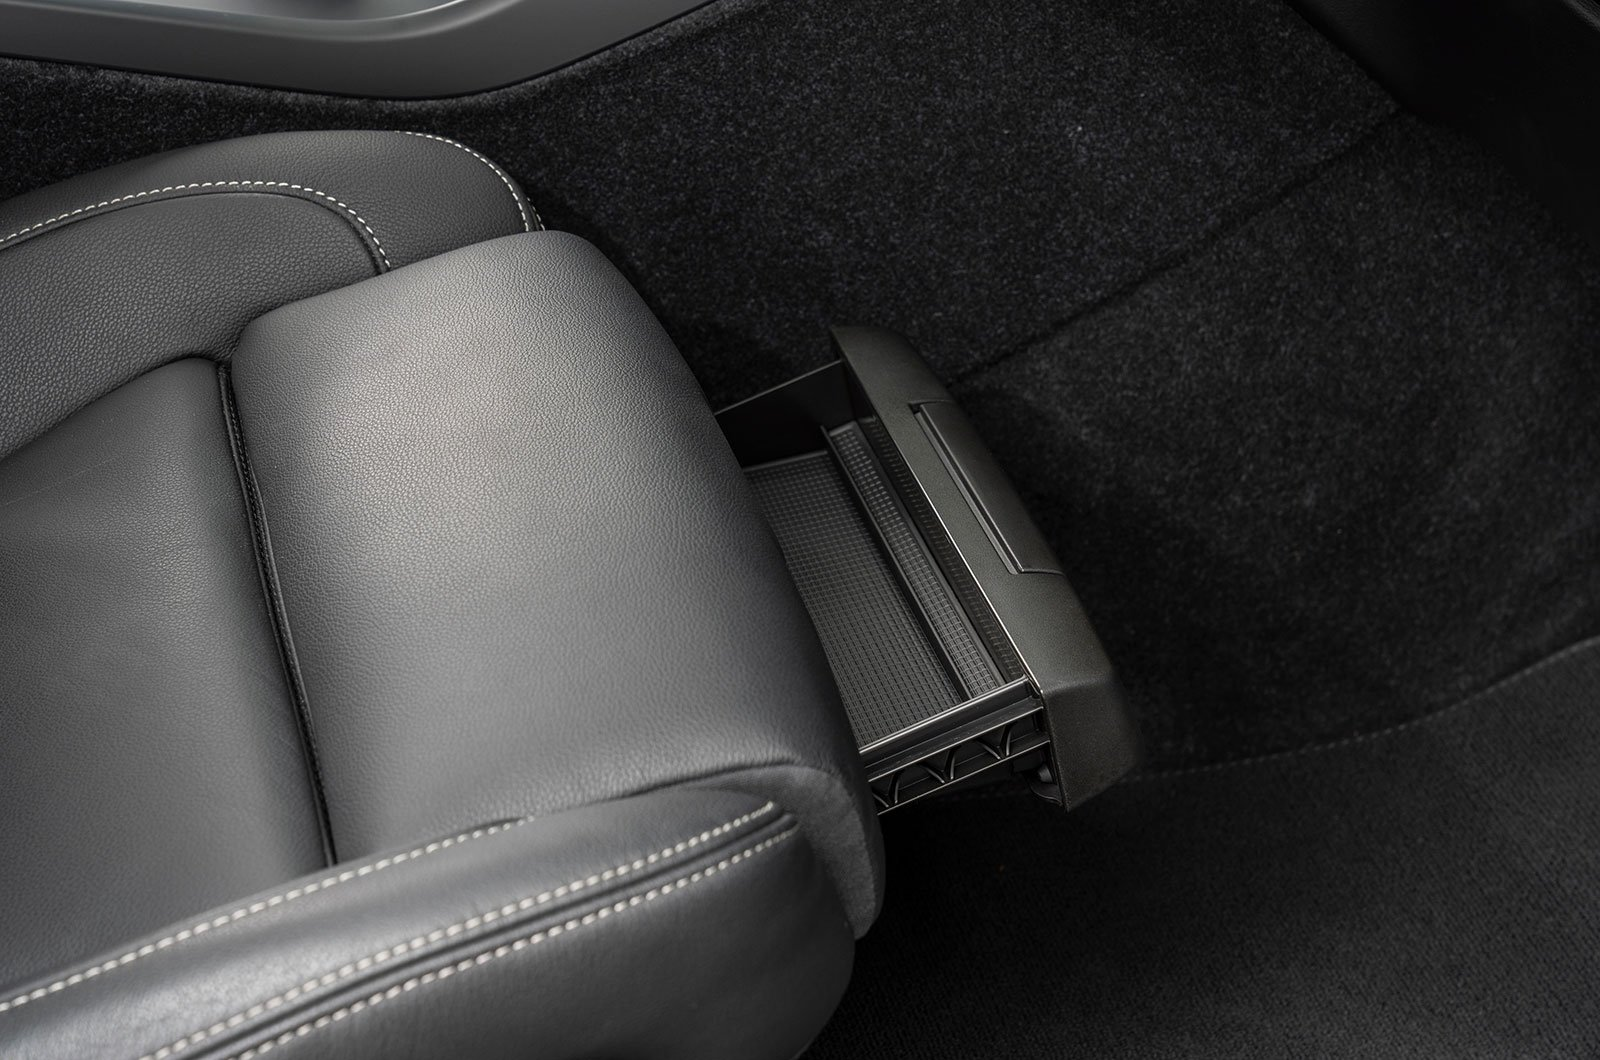 Volvo XC40 driver's seat tray